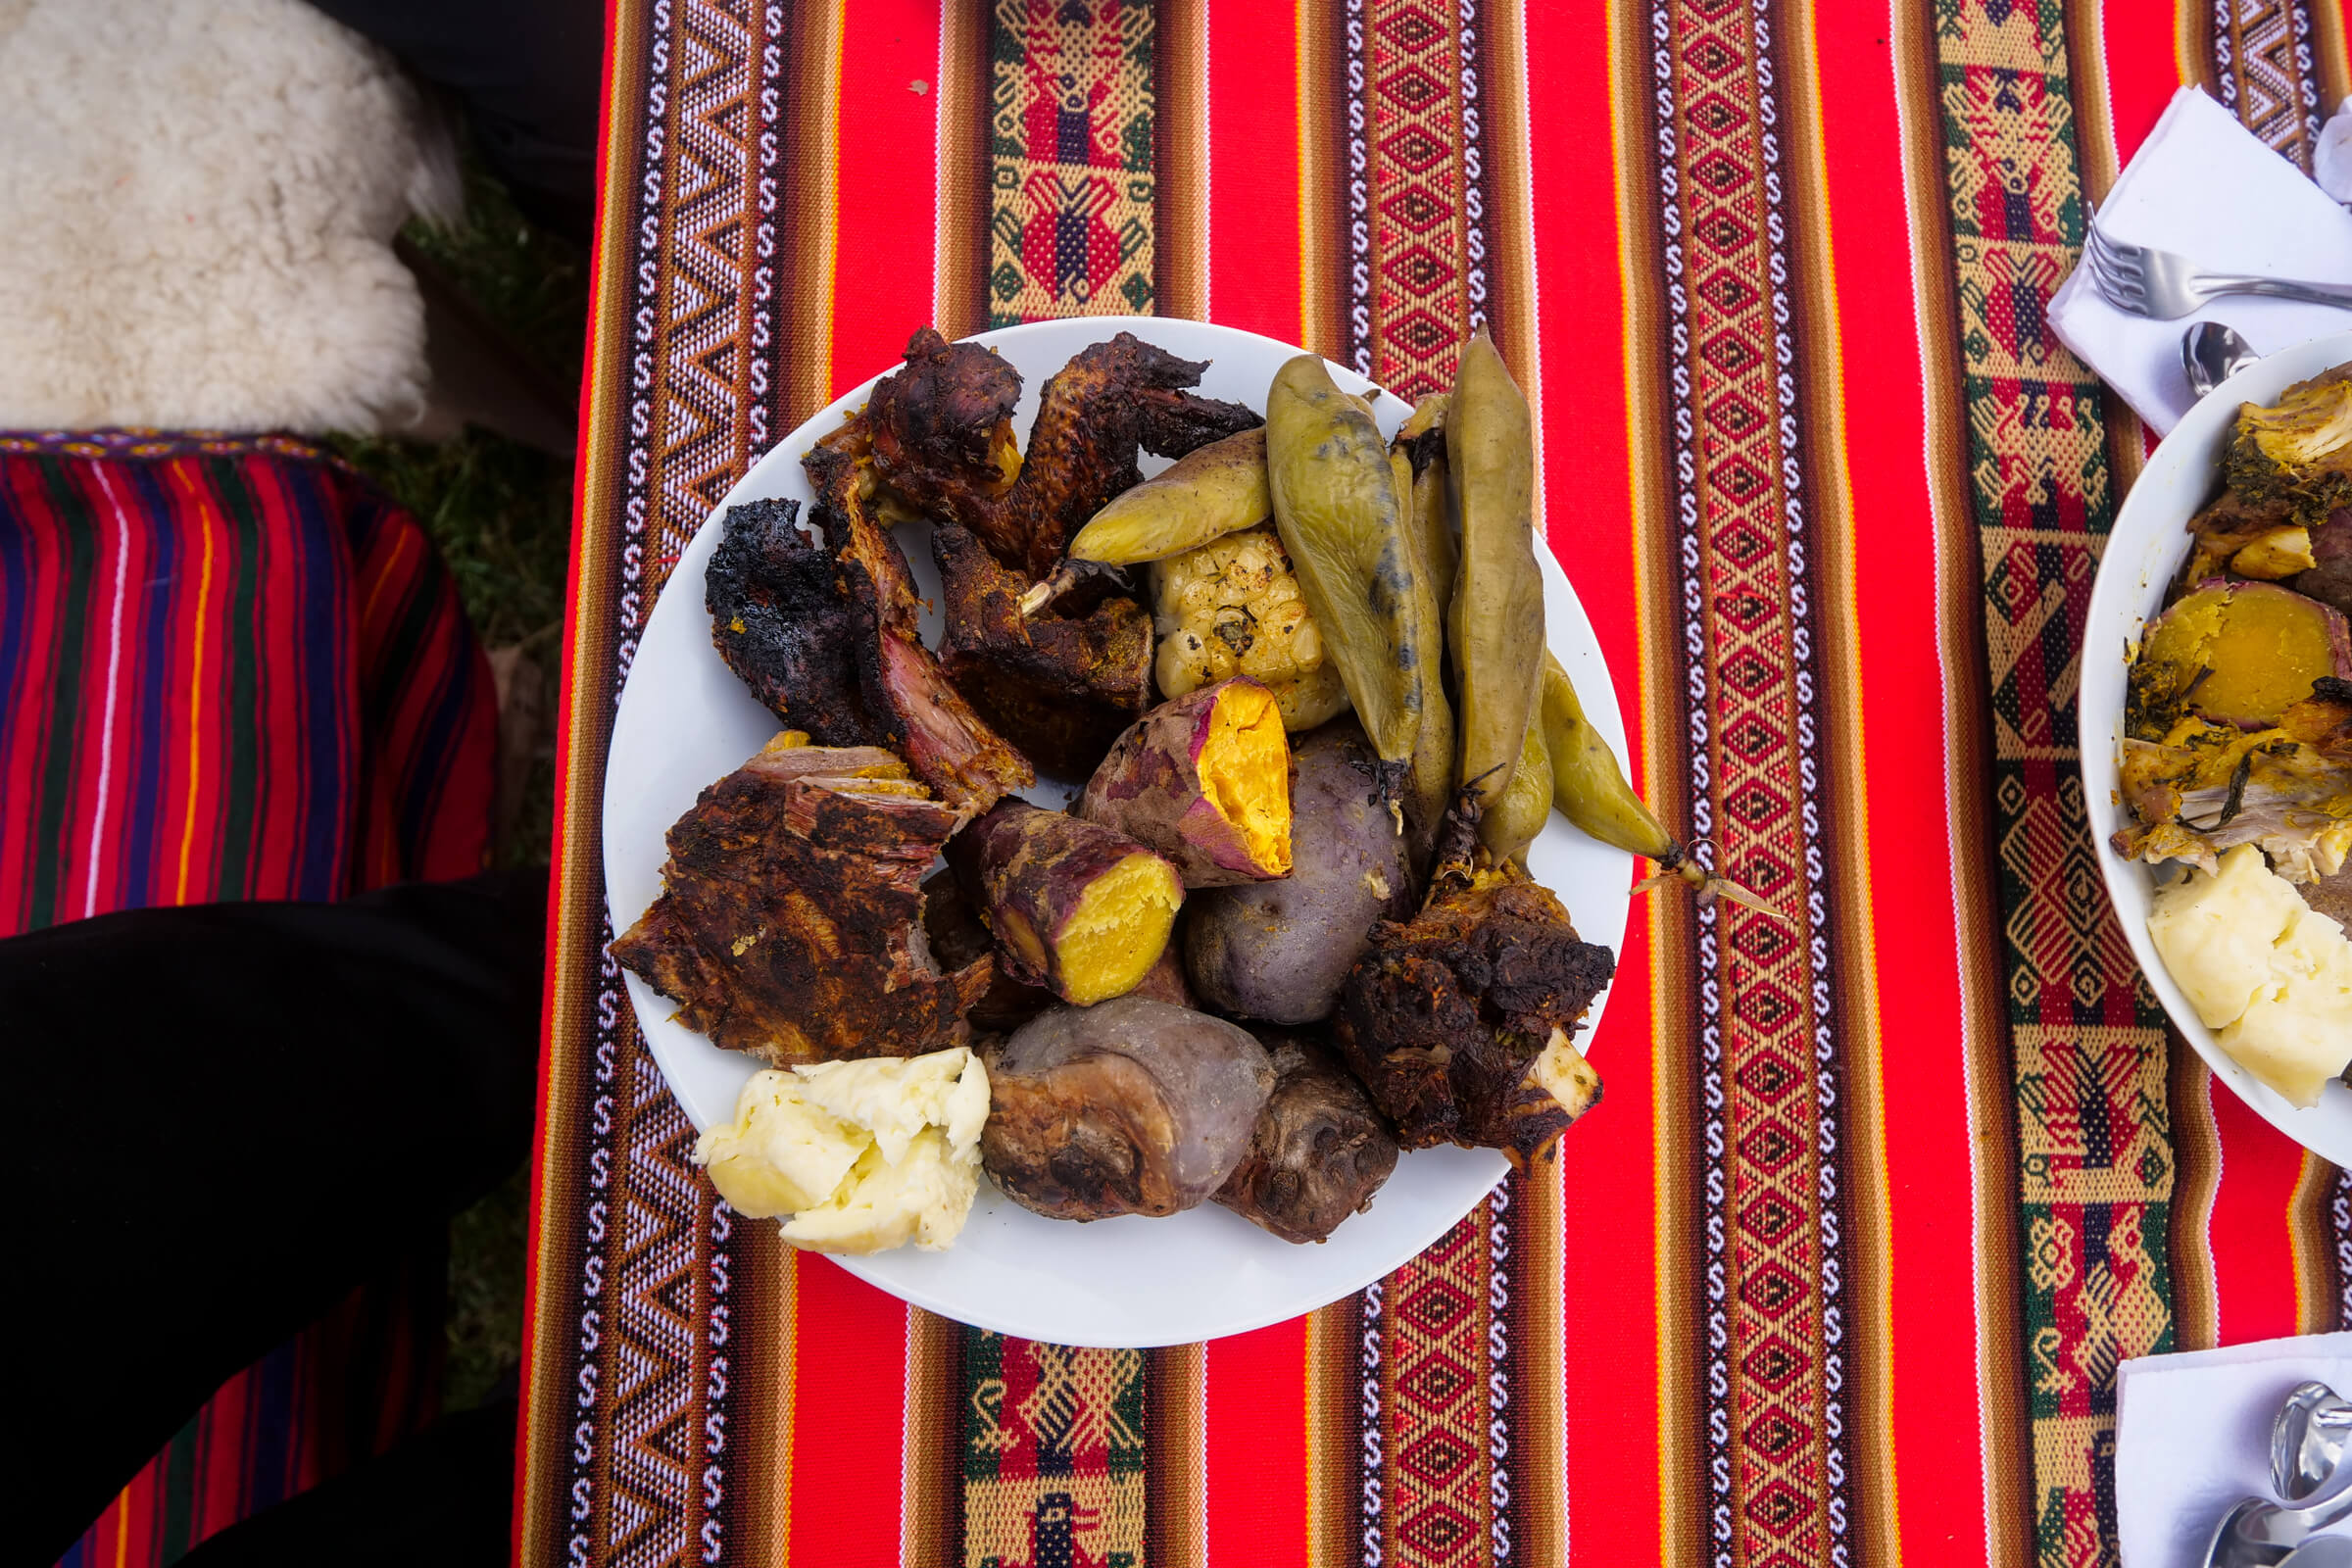 Quechua food, Pachamanca cooks using hot stones and trapped heat